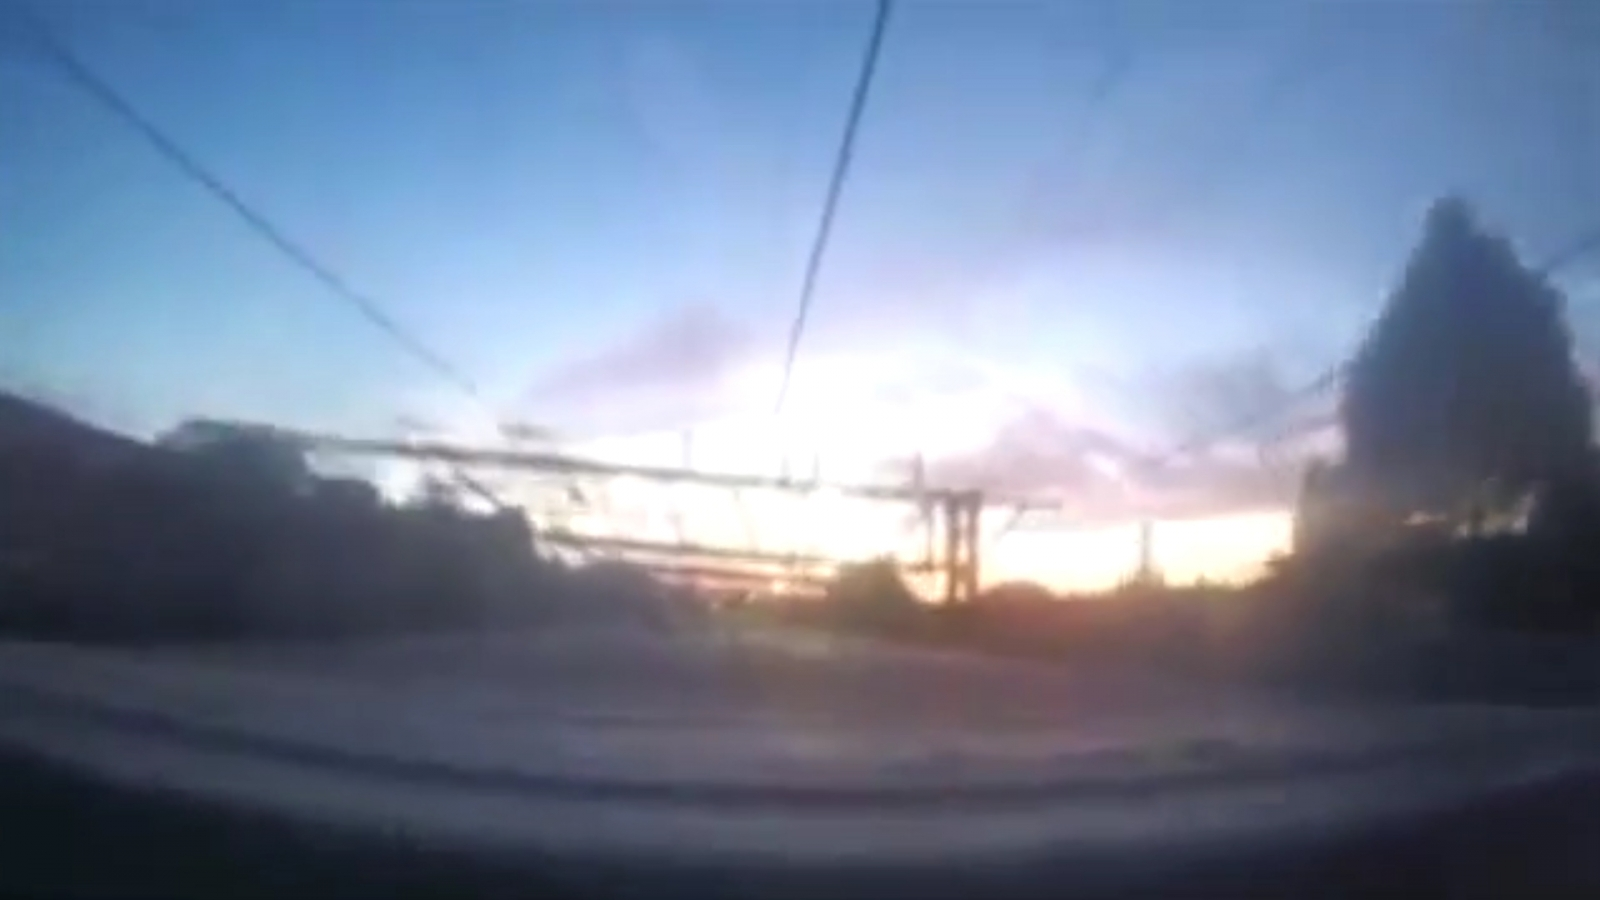 teenage-boys-plead-guilty-to-reckless-train-surfing-stunt